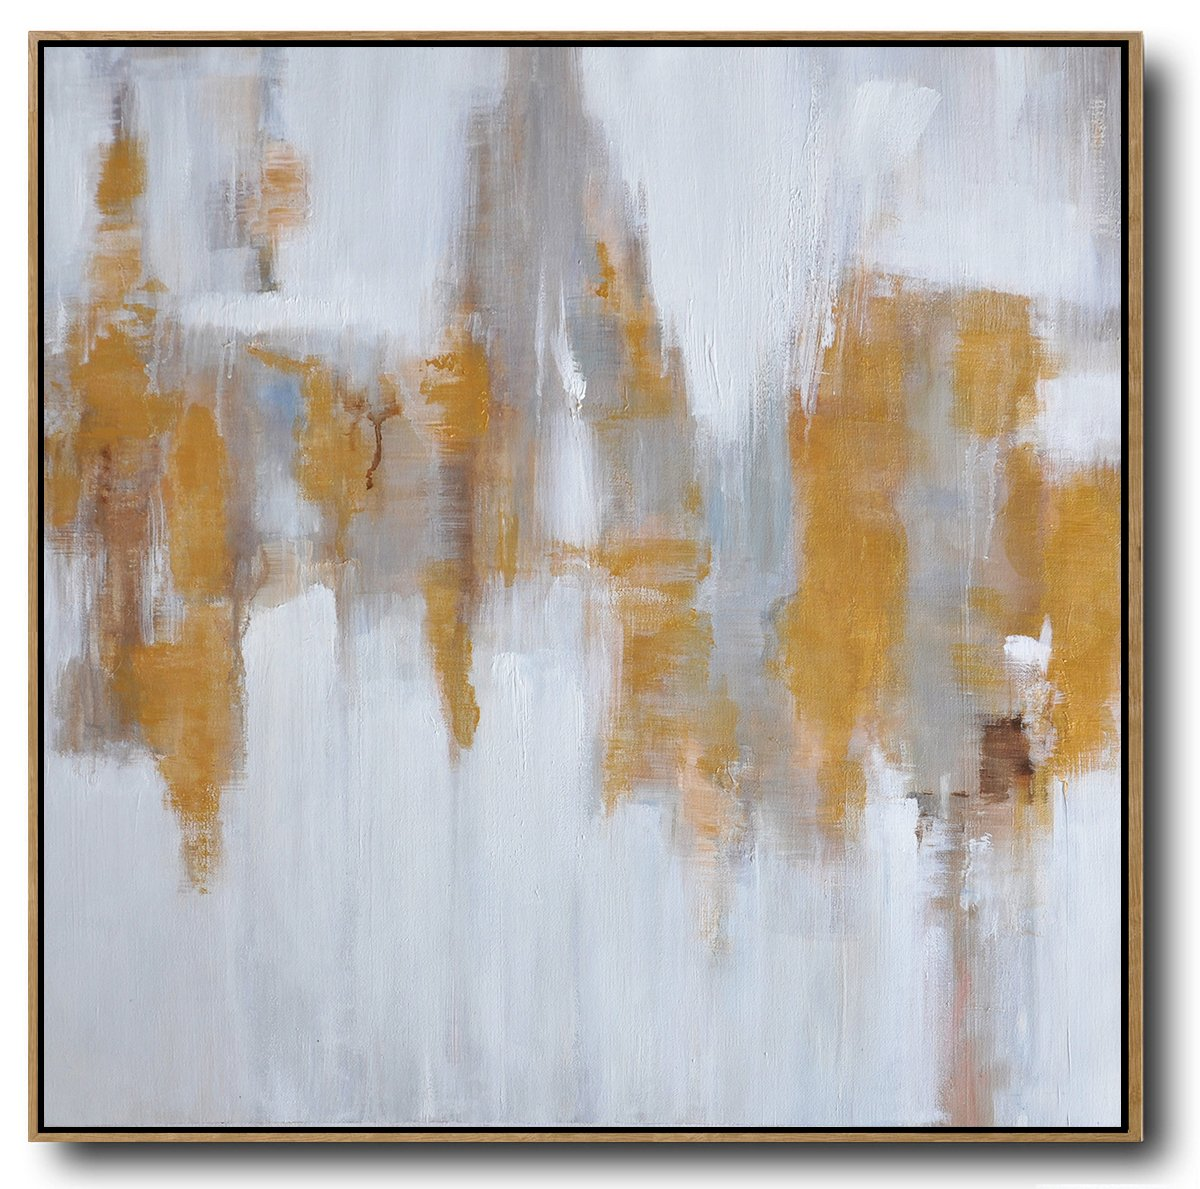 Extra Large Acrylic Painting On Canvas,Large Abstract Landscape Oil Painting On Canvas,Large Abstract Wall Art,White,Gray,Yellow.etc